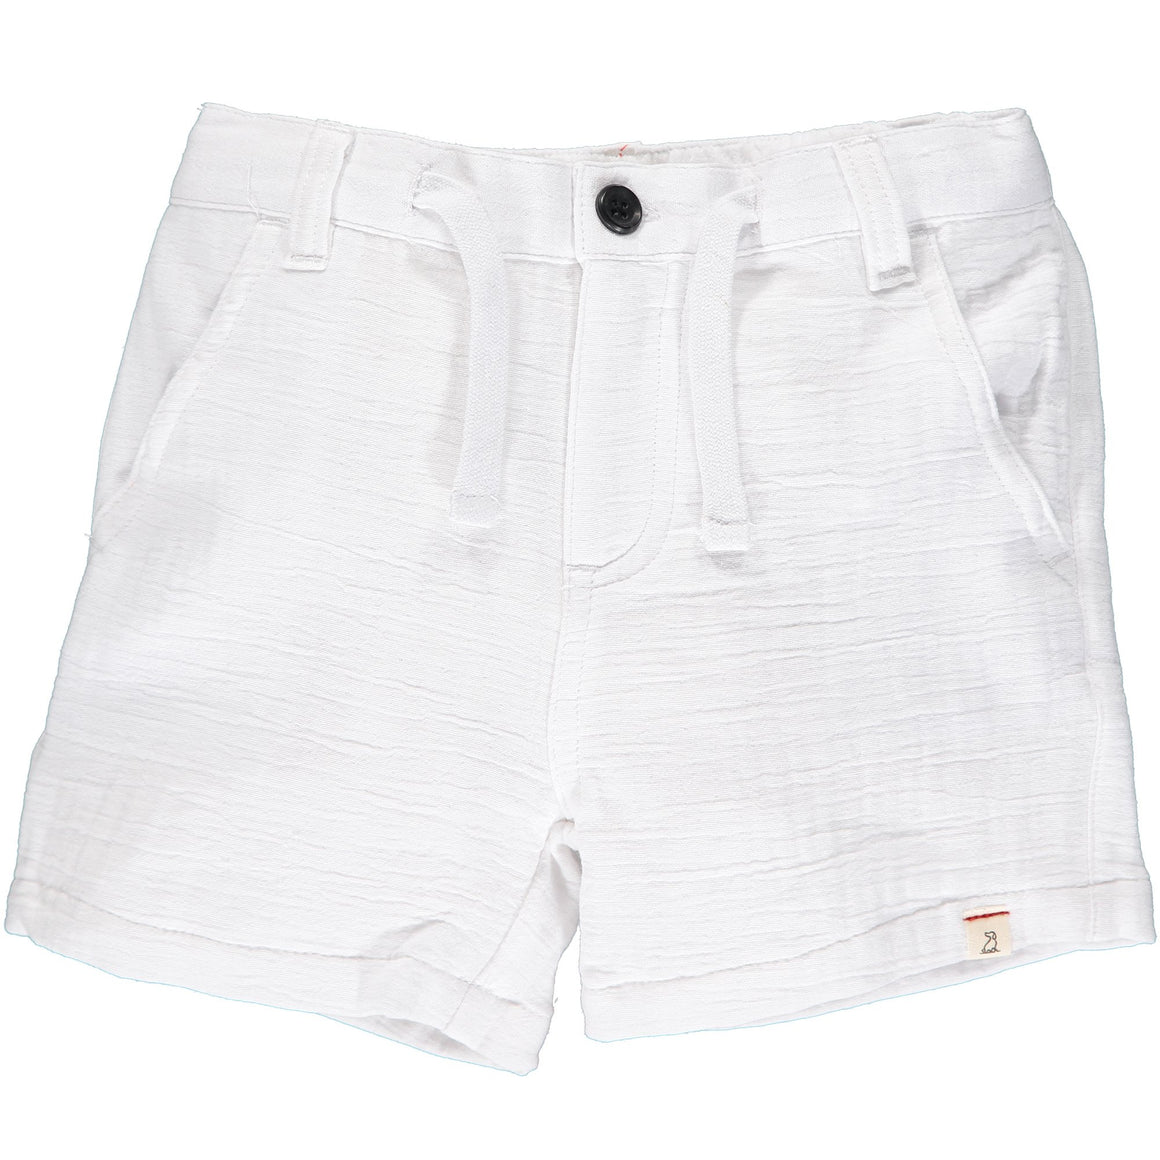 Me and Henry | Crew Gauze Shorts | White